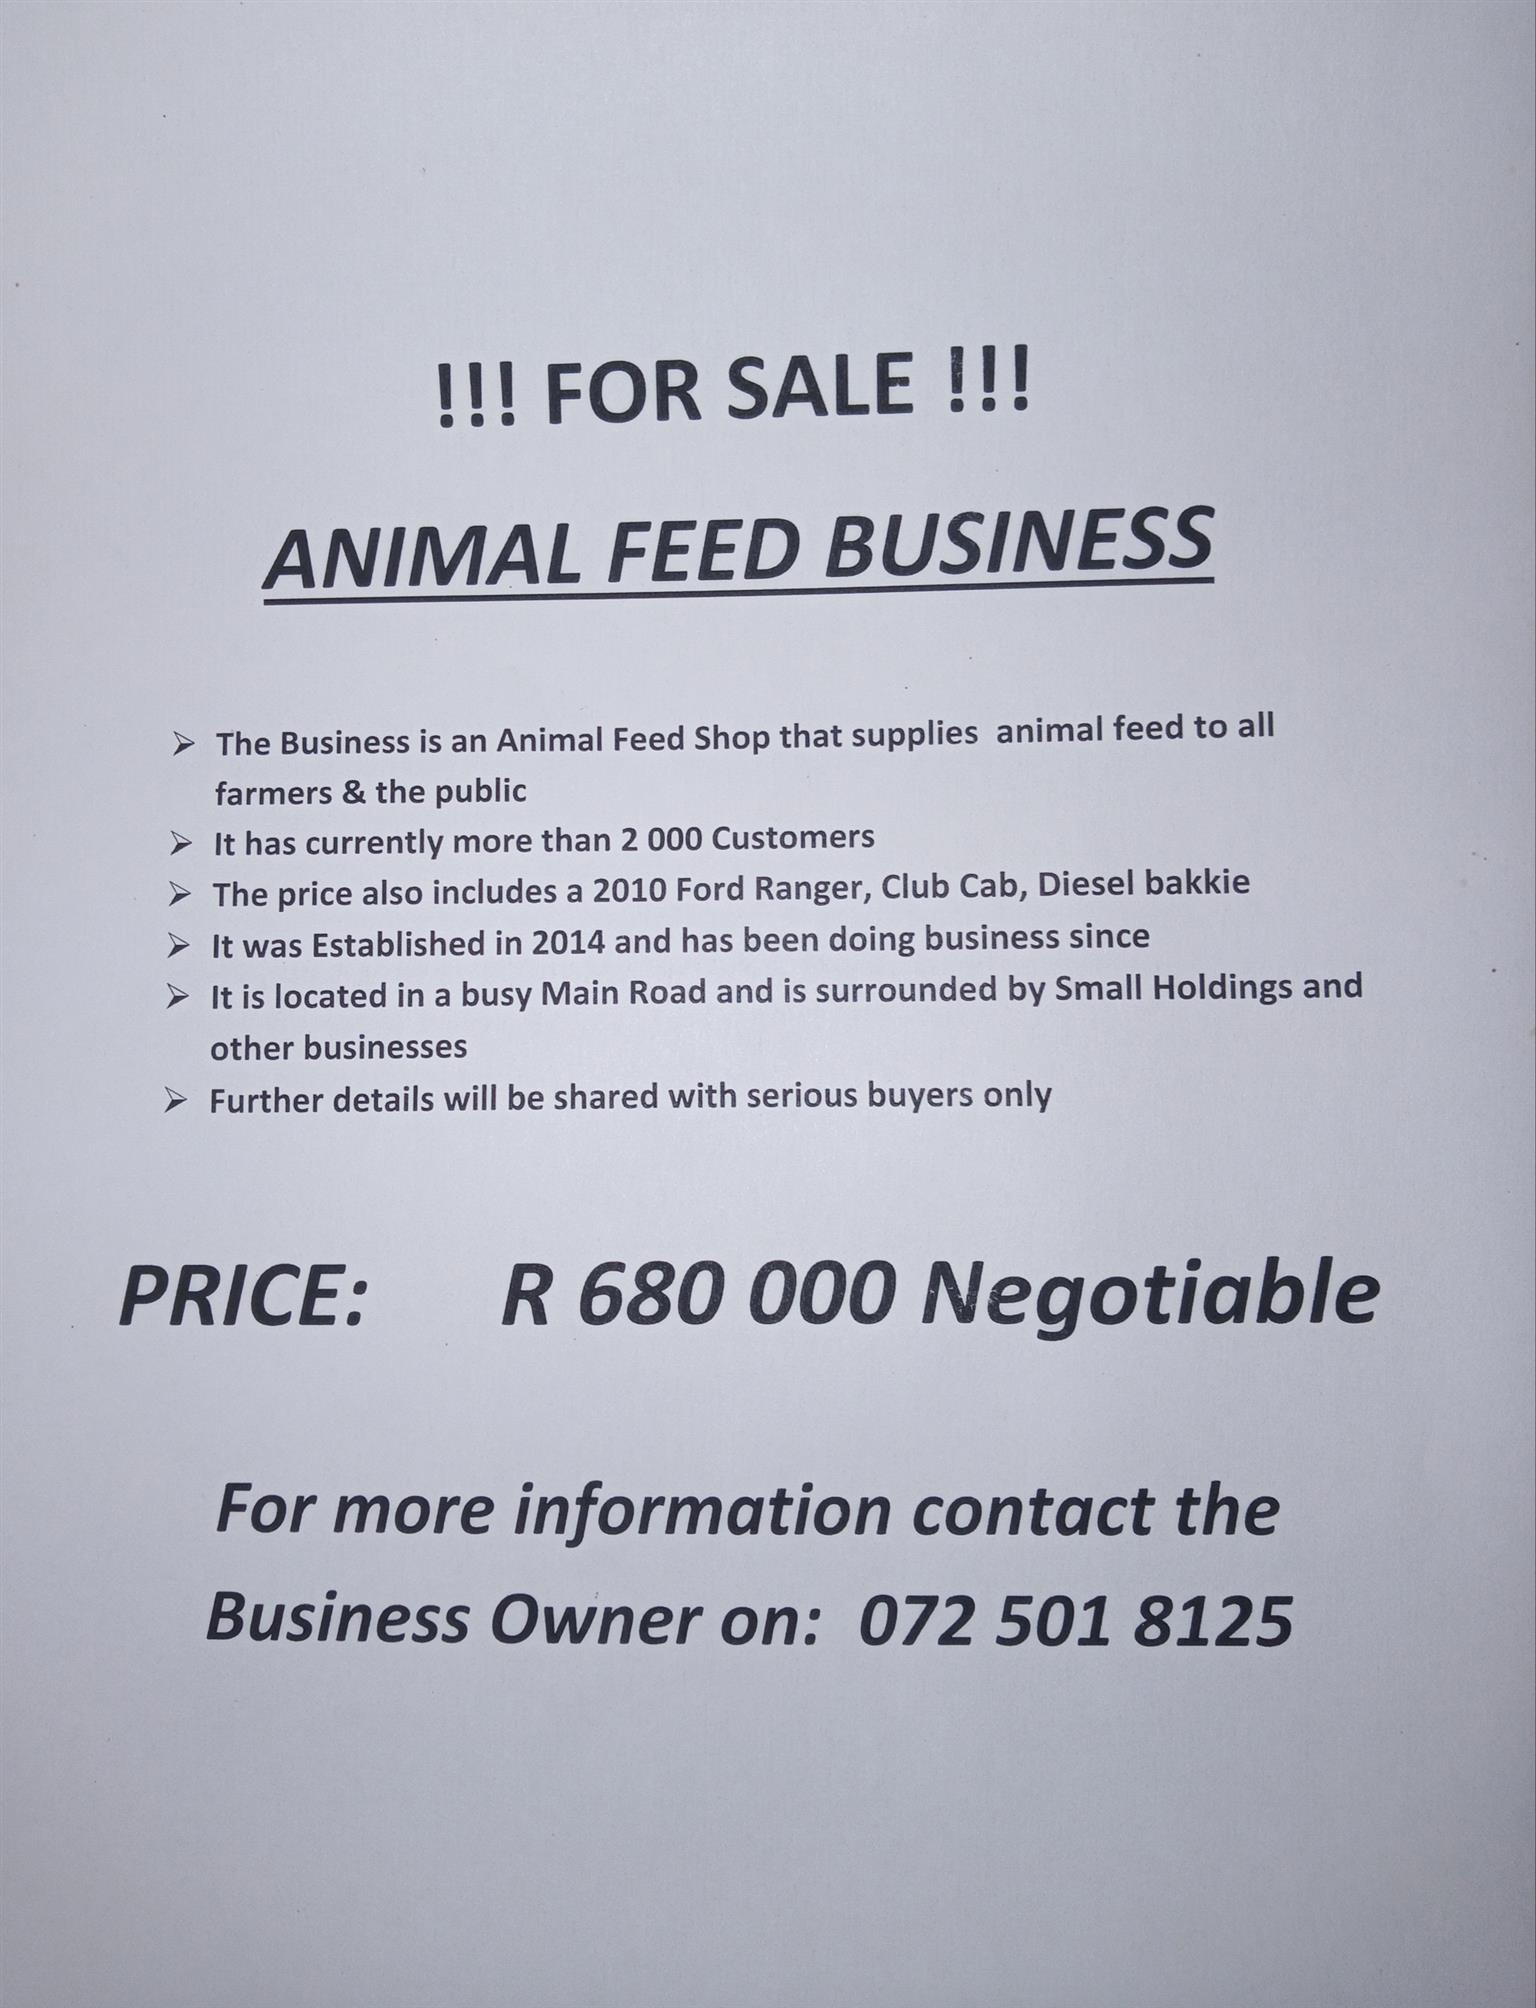 MT VEEVOERE / ANIMAL FEEDS - BUSINESS FOR SALE